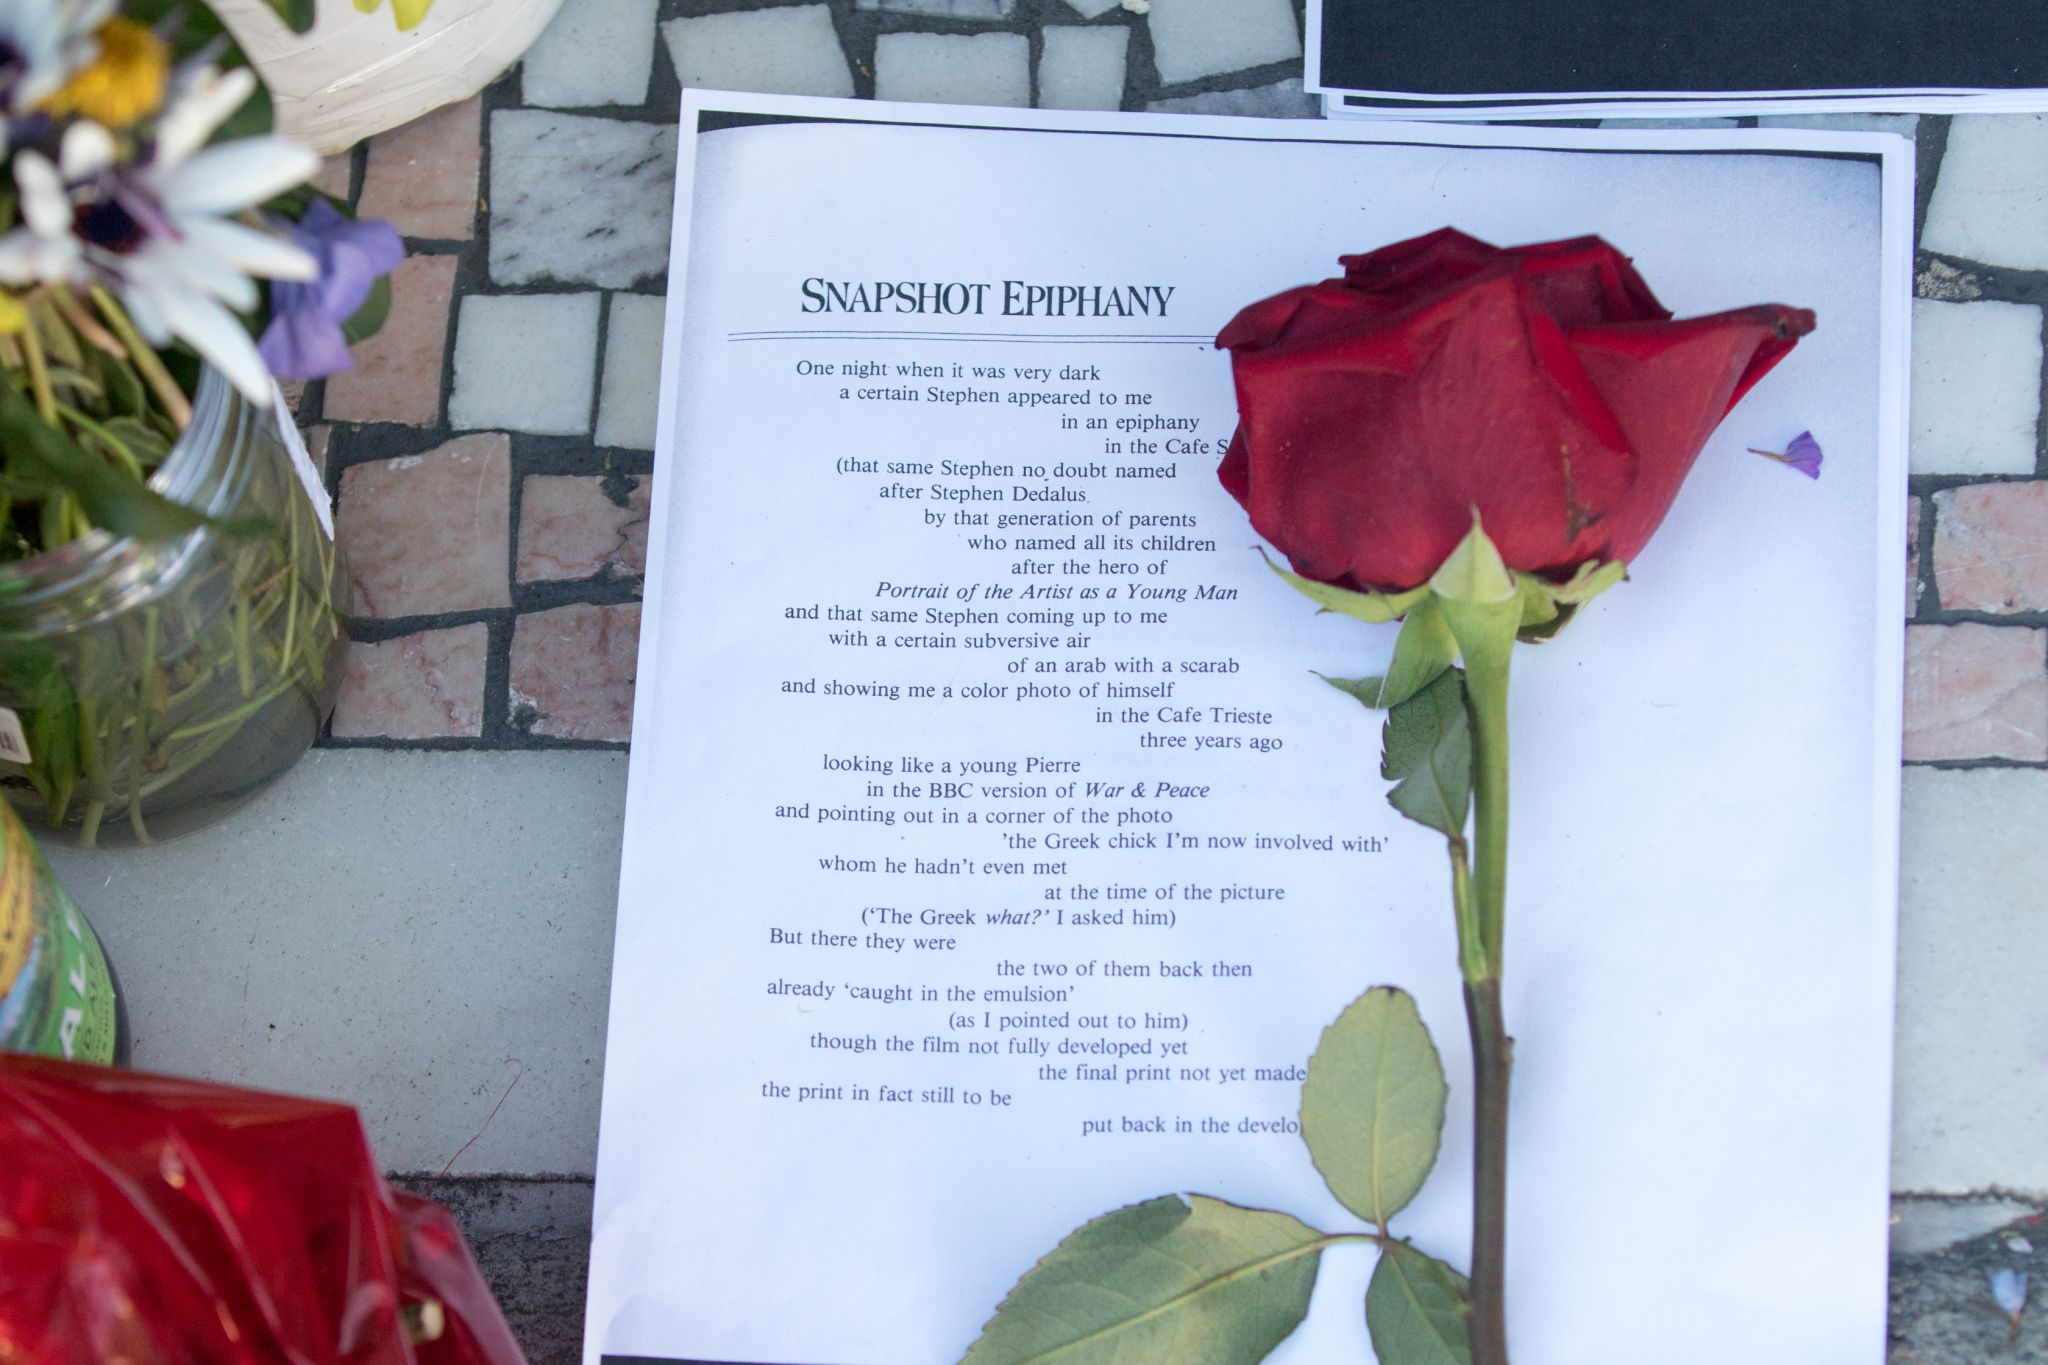 A rose and poem are part of an impromptu memorial in honor of Lawrence Ferlinghetti that appeared overnight in front of City Lights Booksellers & Publishers in San Francisco on Feb. 24, 2021.